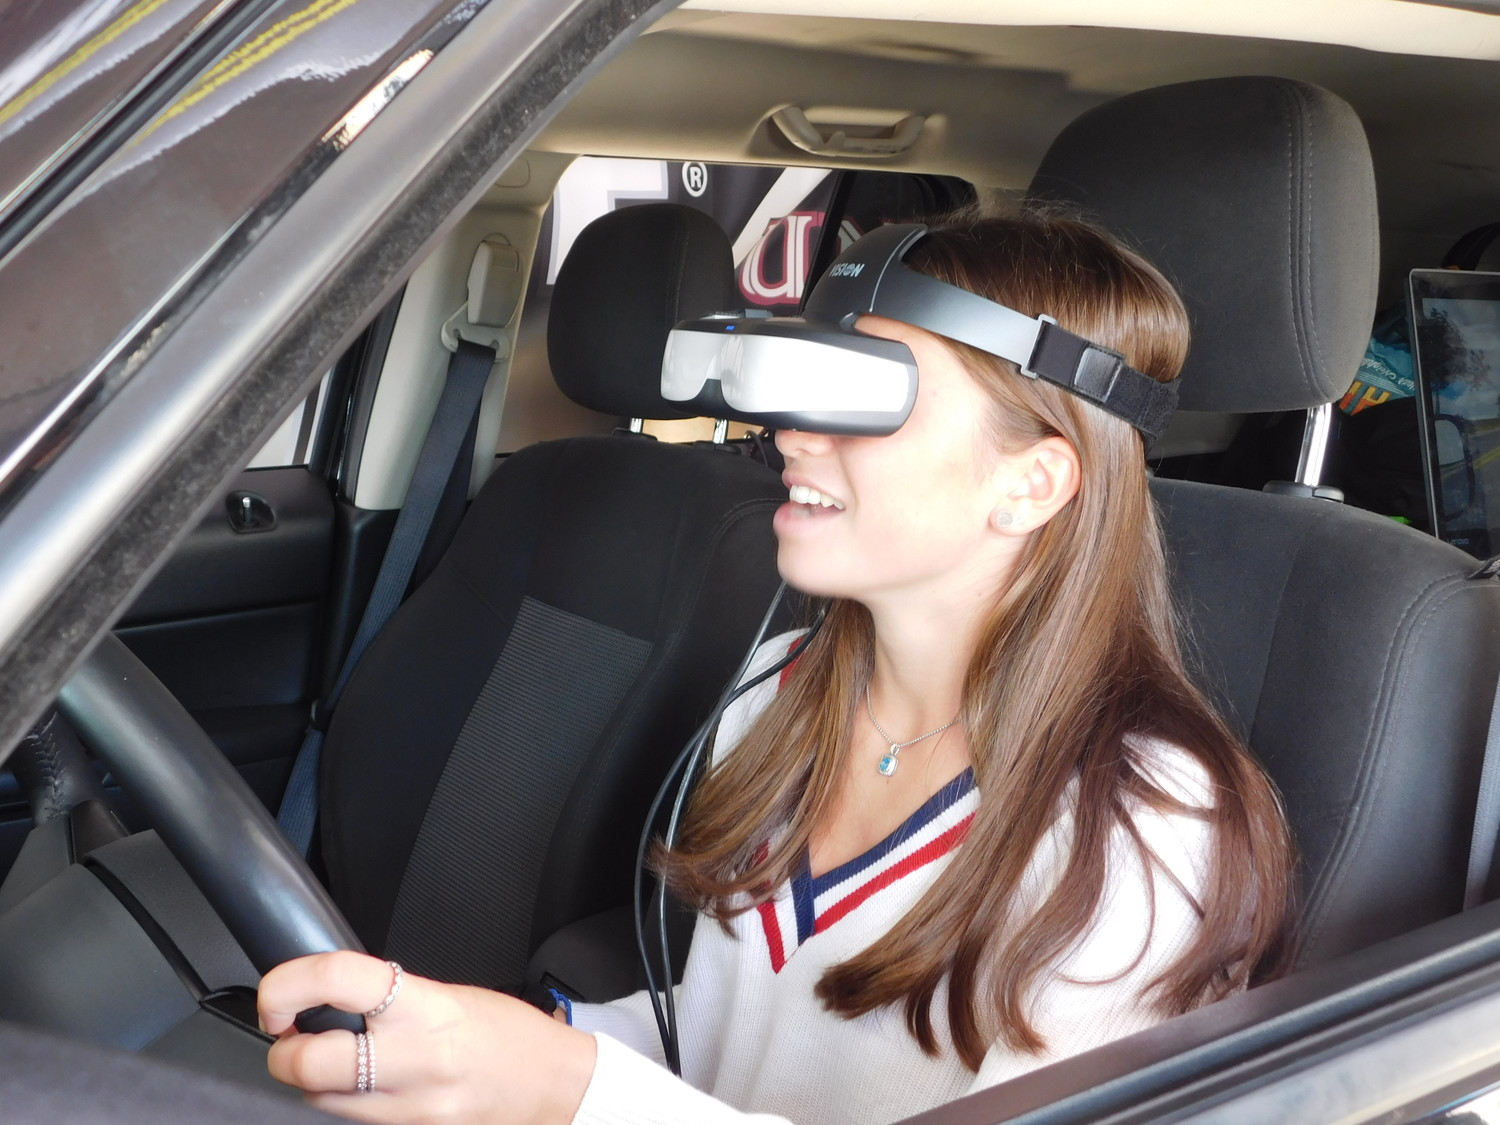 Isabella Pace donned the virtual reality headset and felt first-hand the difficulty of driving while texting.